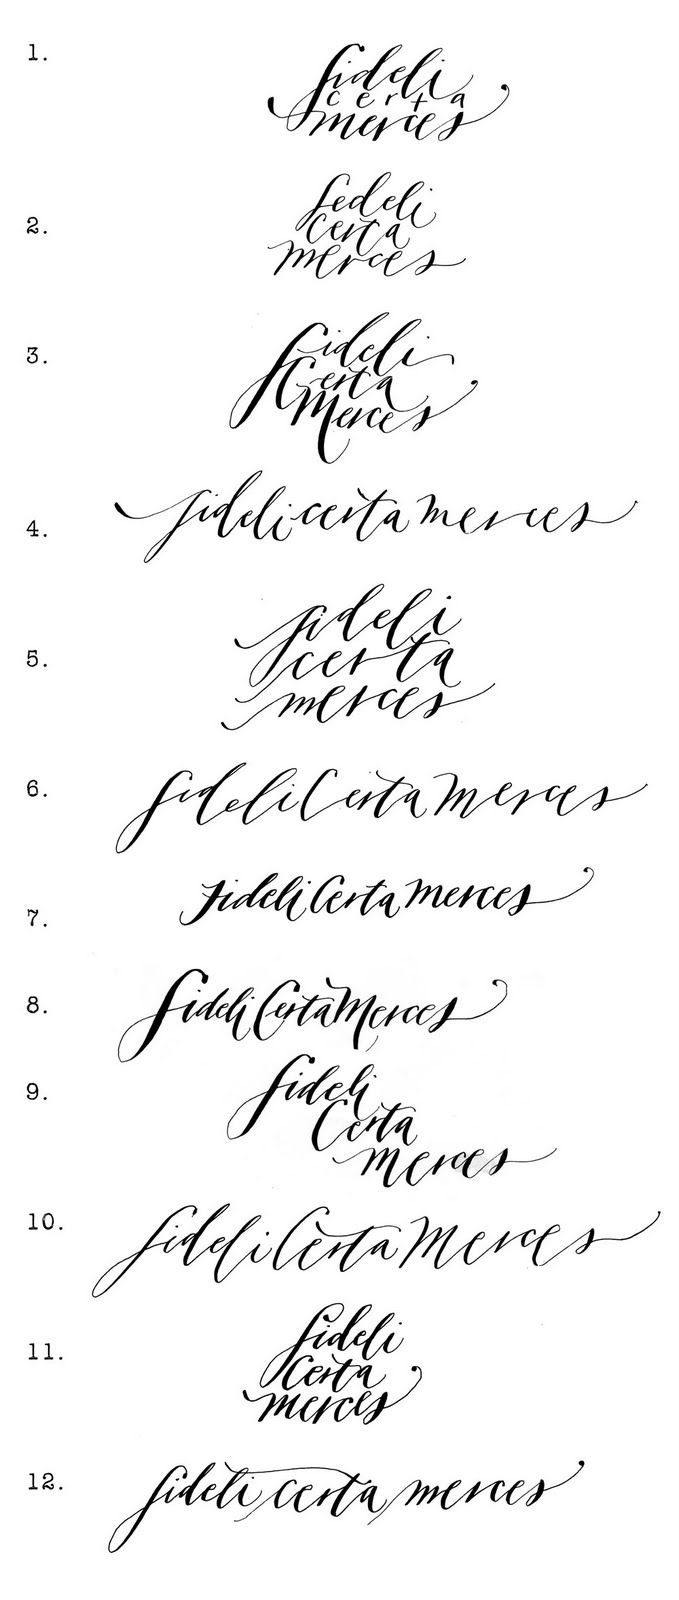 Calligraphy Tattoo Pinterest Part Ii To The Faithful Reward Is Certain People Places Things